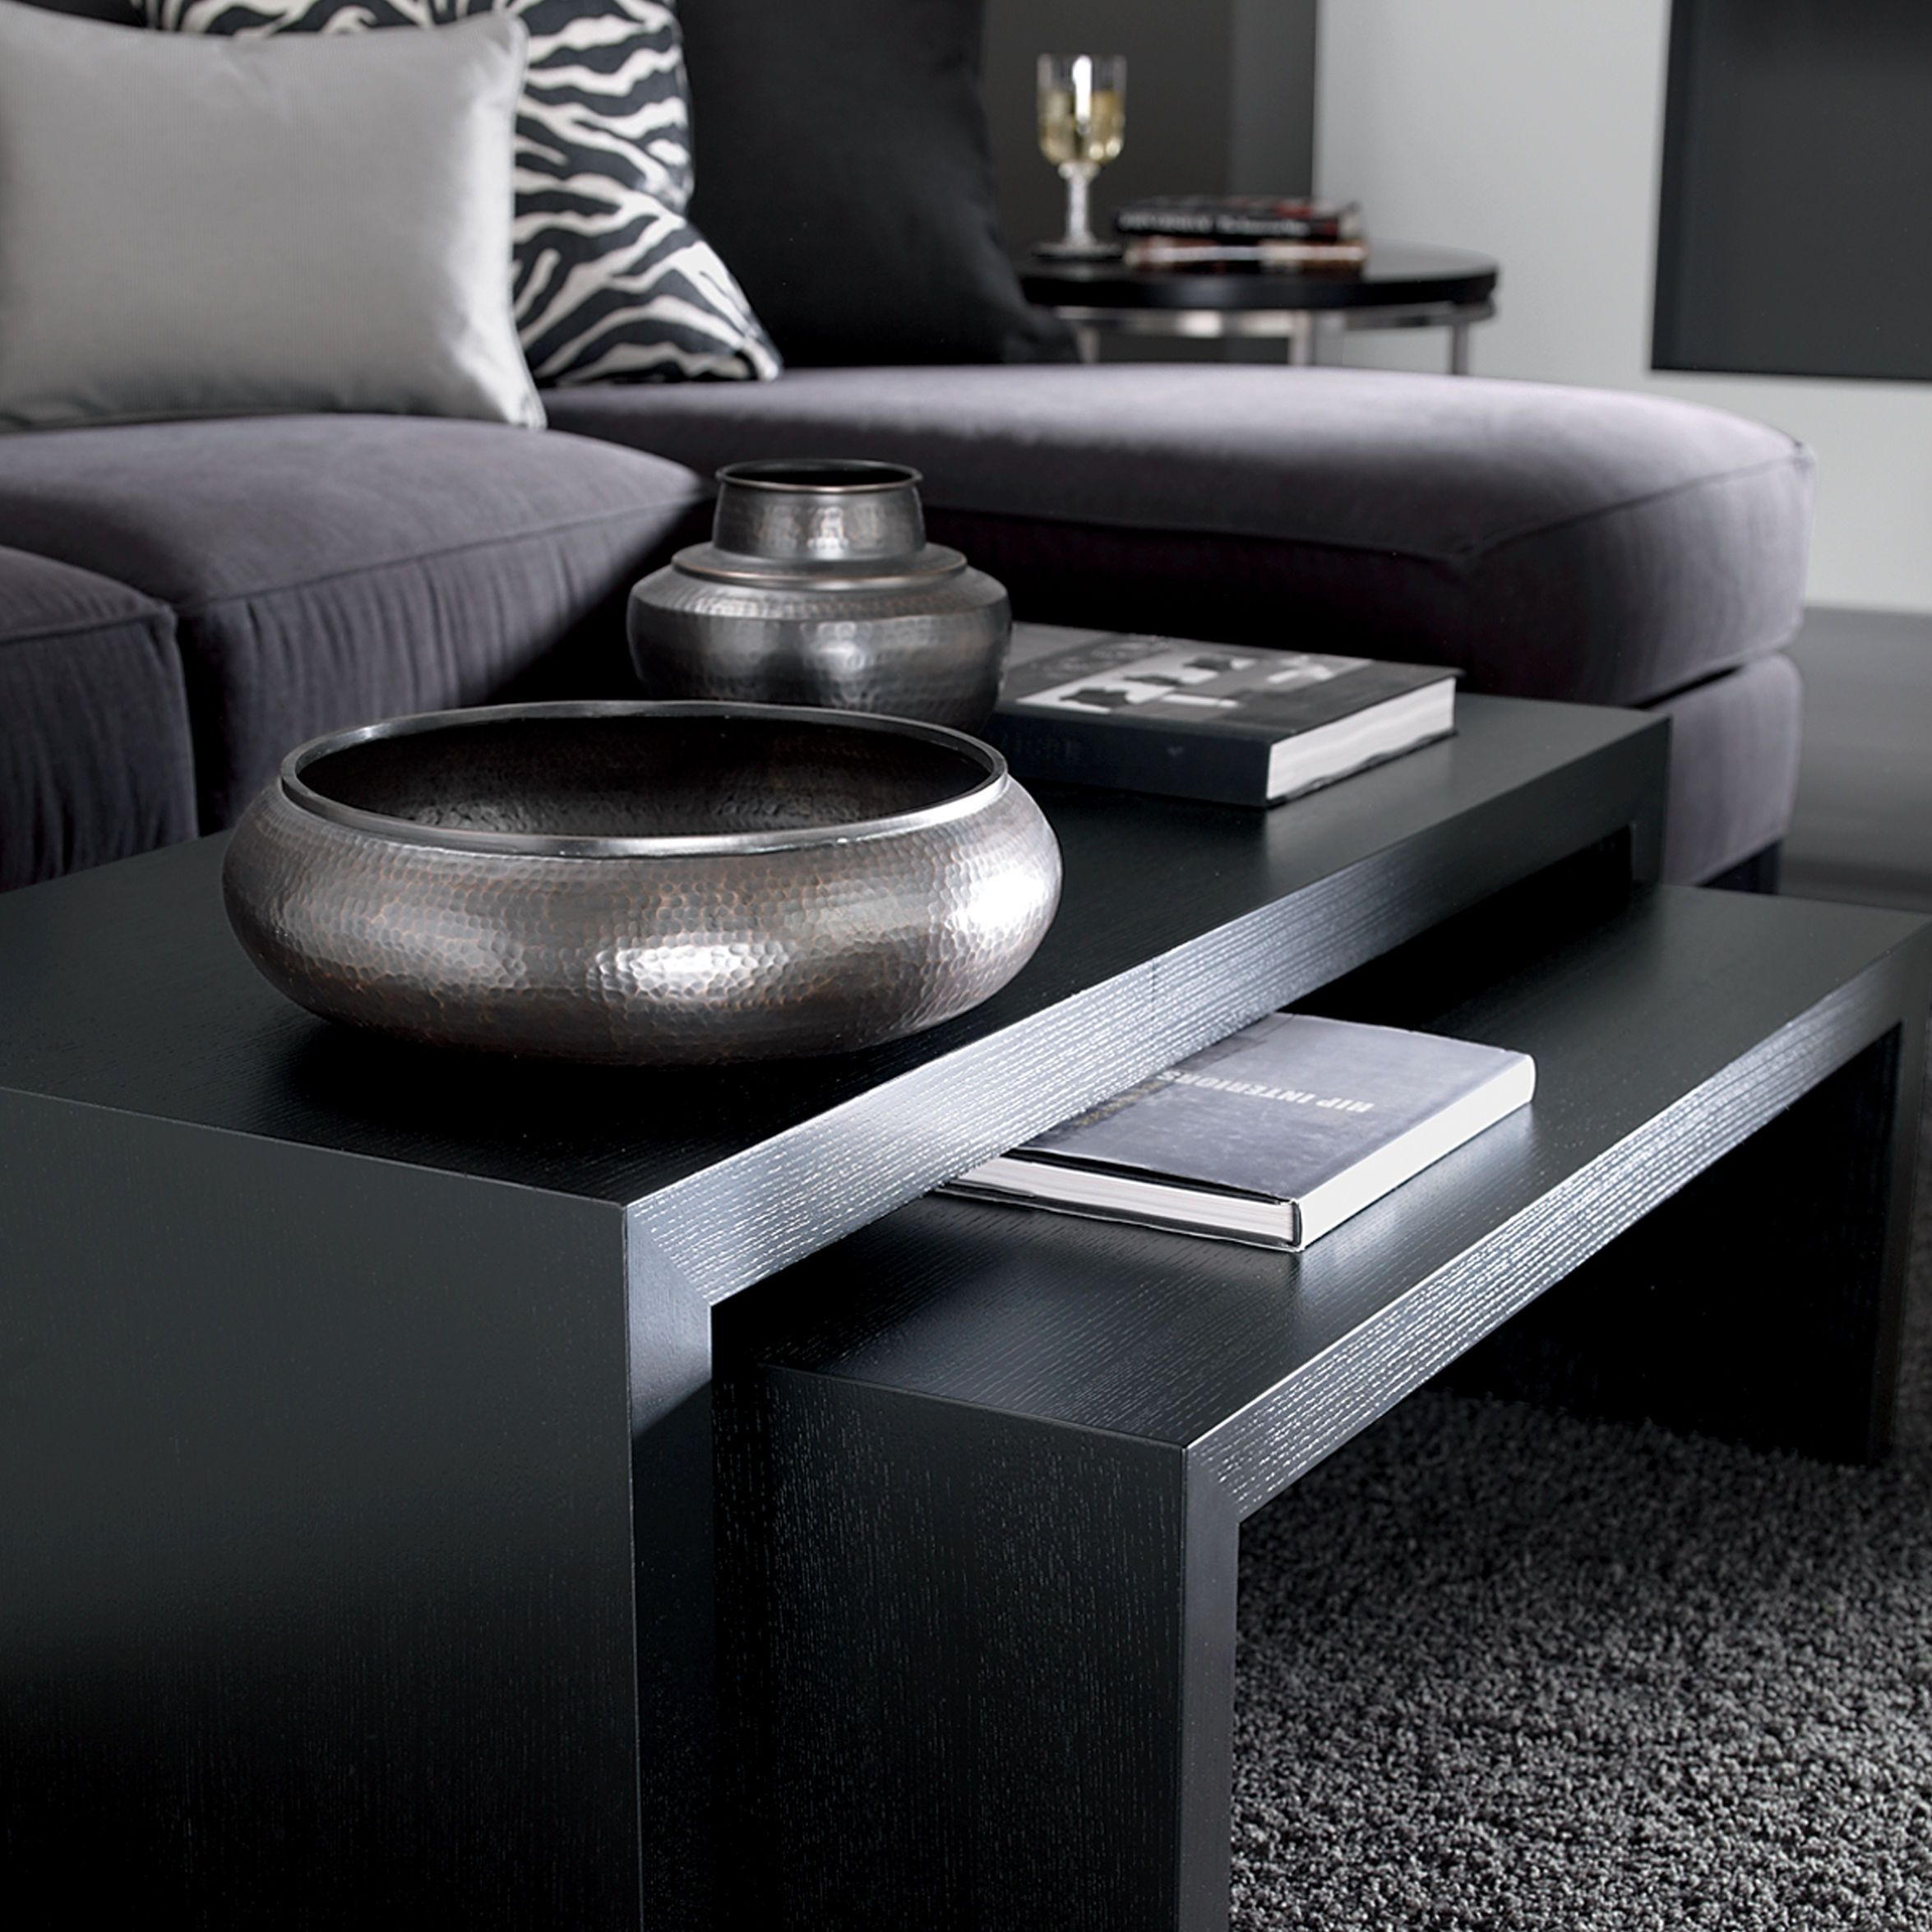 Duo coffee tables ethan allen us black furniture ethan allen duo coffee tables ethan allen us black furniture geotapseo Images